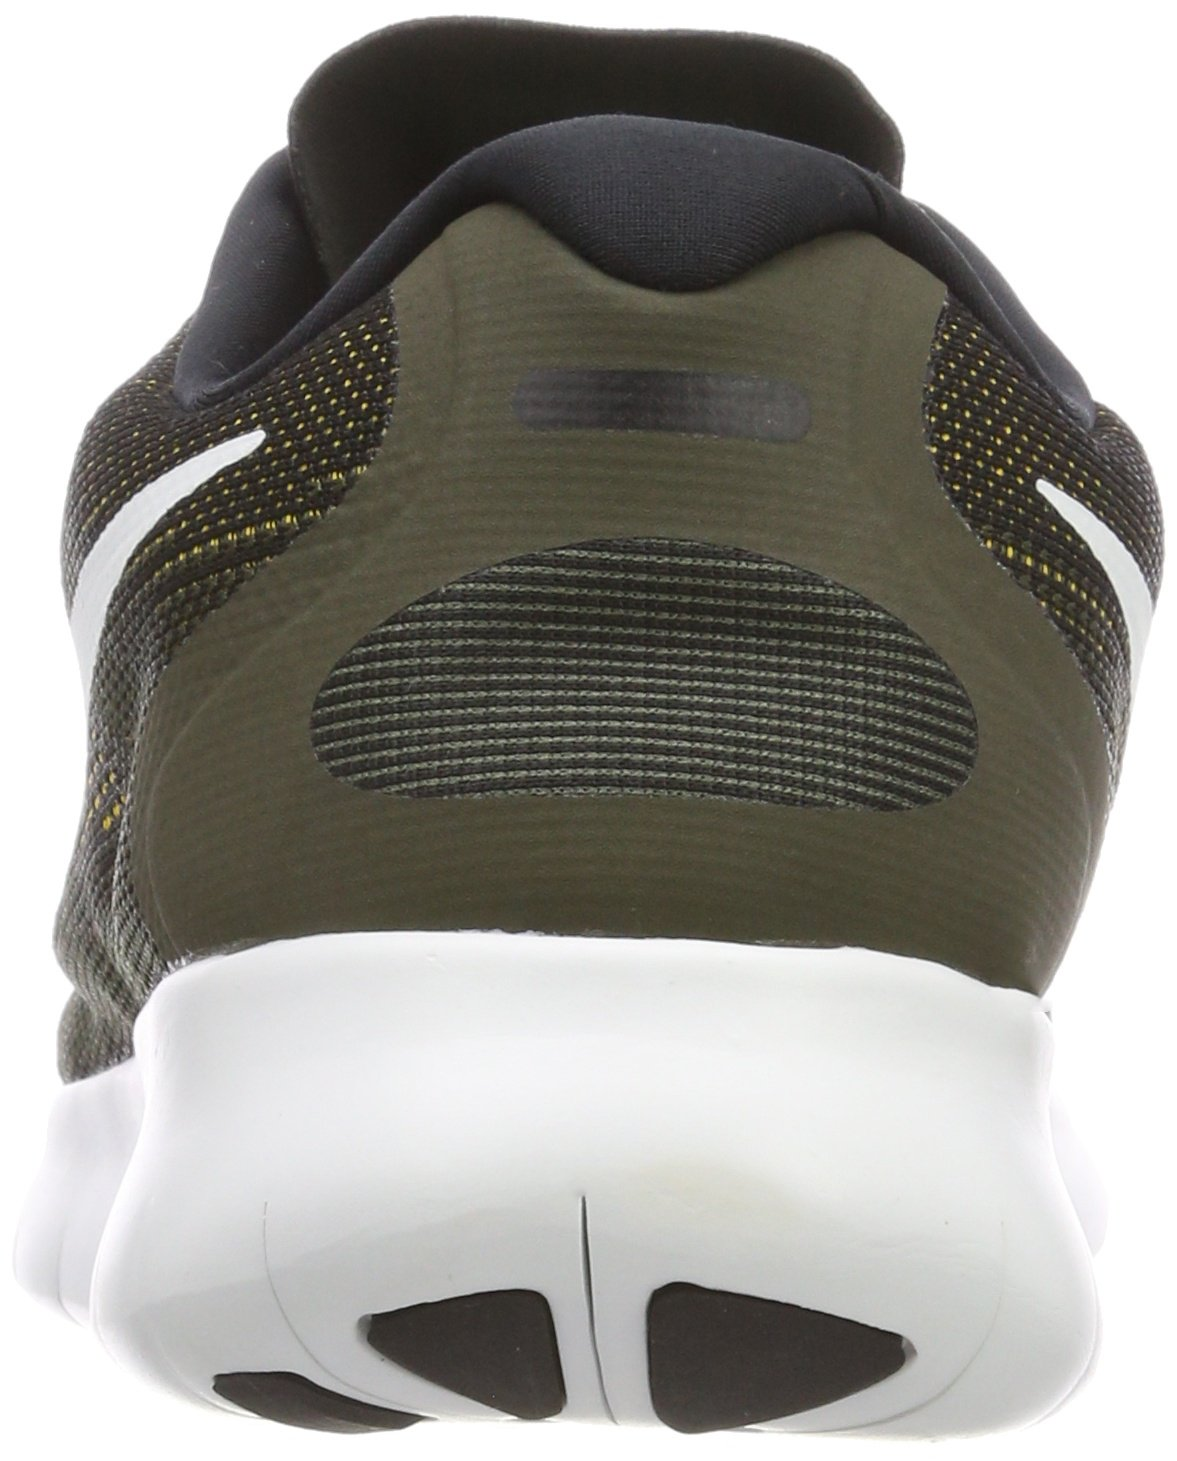 NIKE Free Rn 2017 Mens Style: 880839-008 Size: 8 by Nike (Image #2)